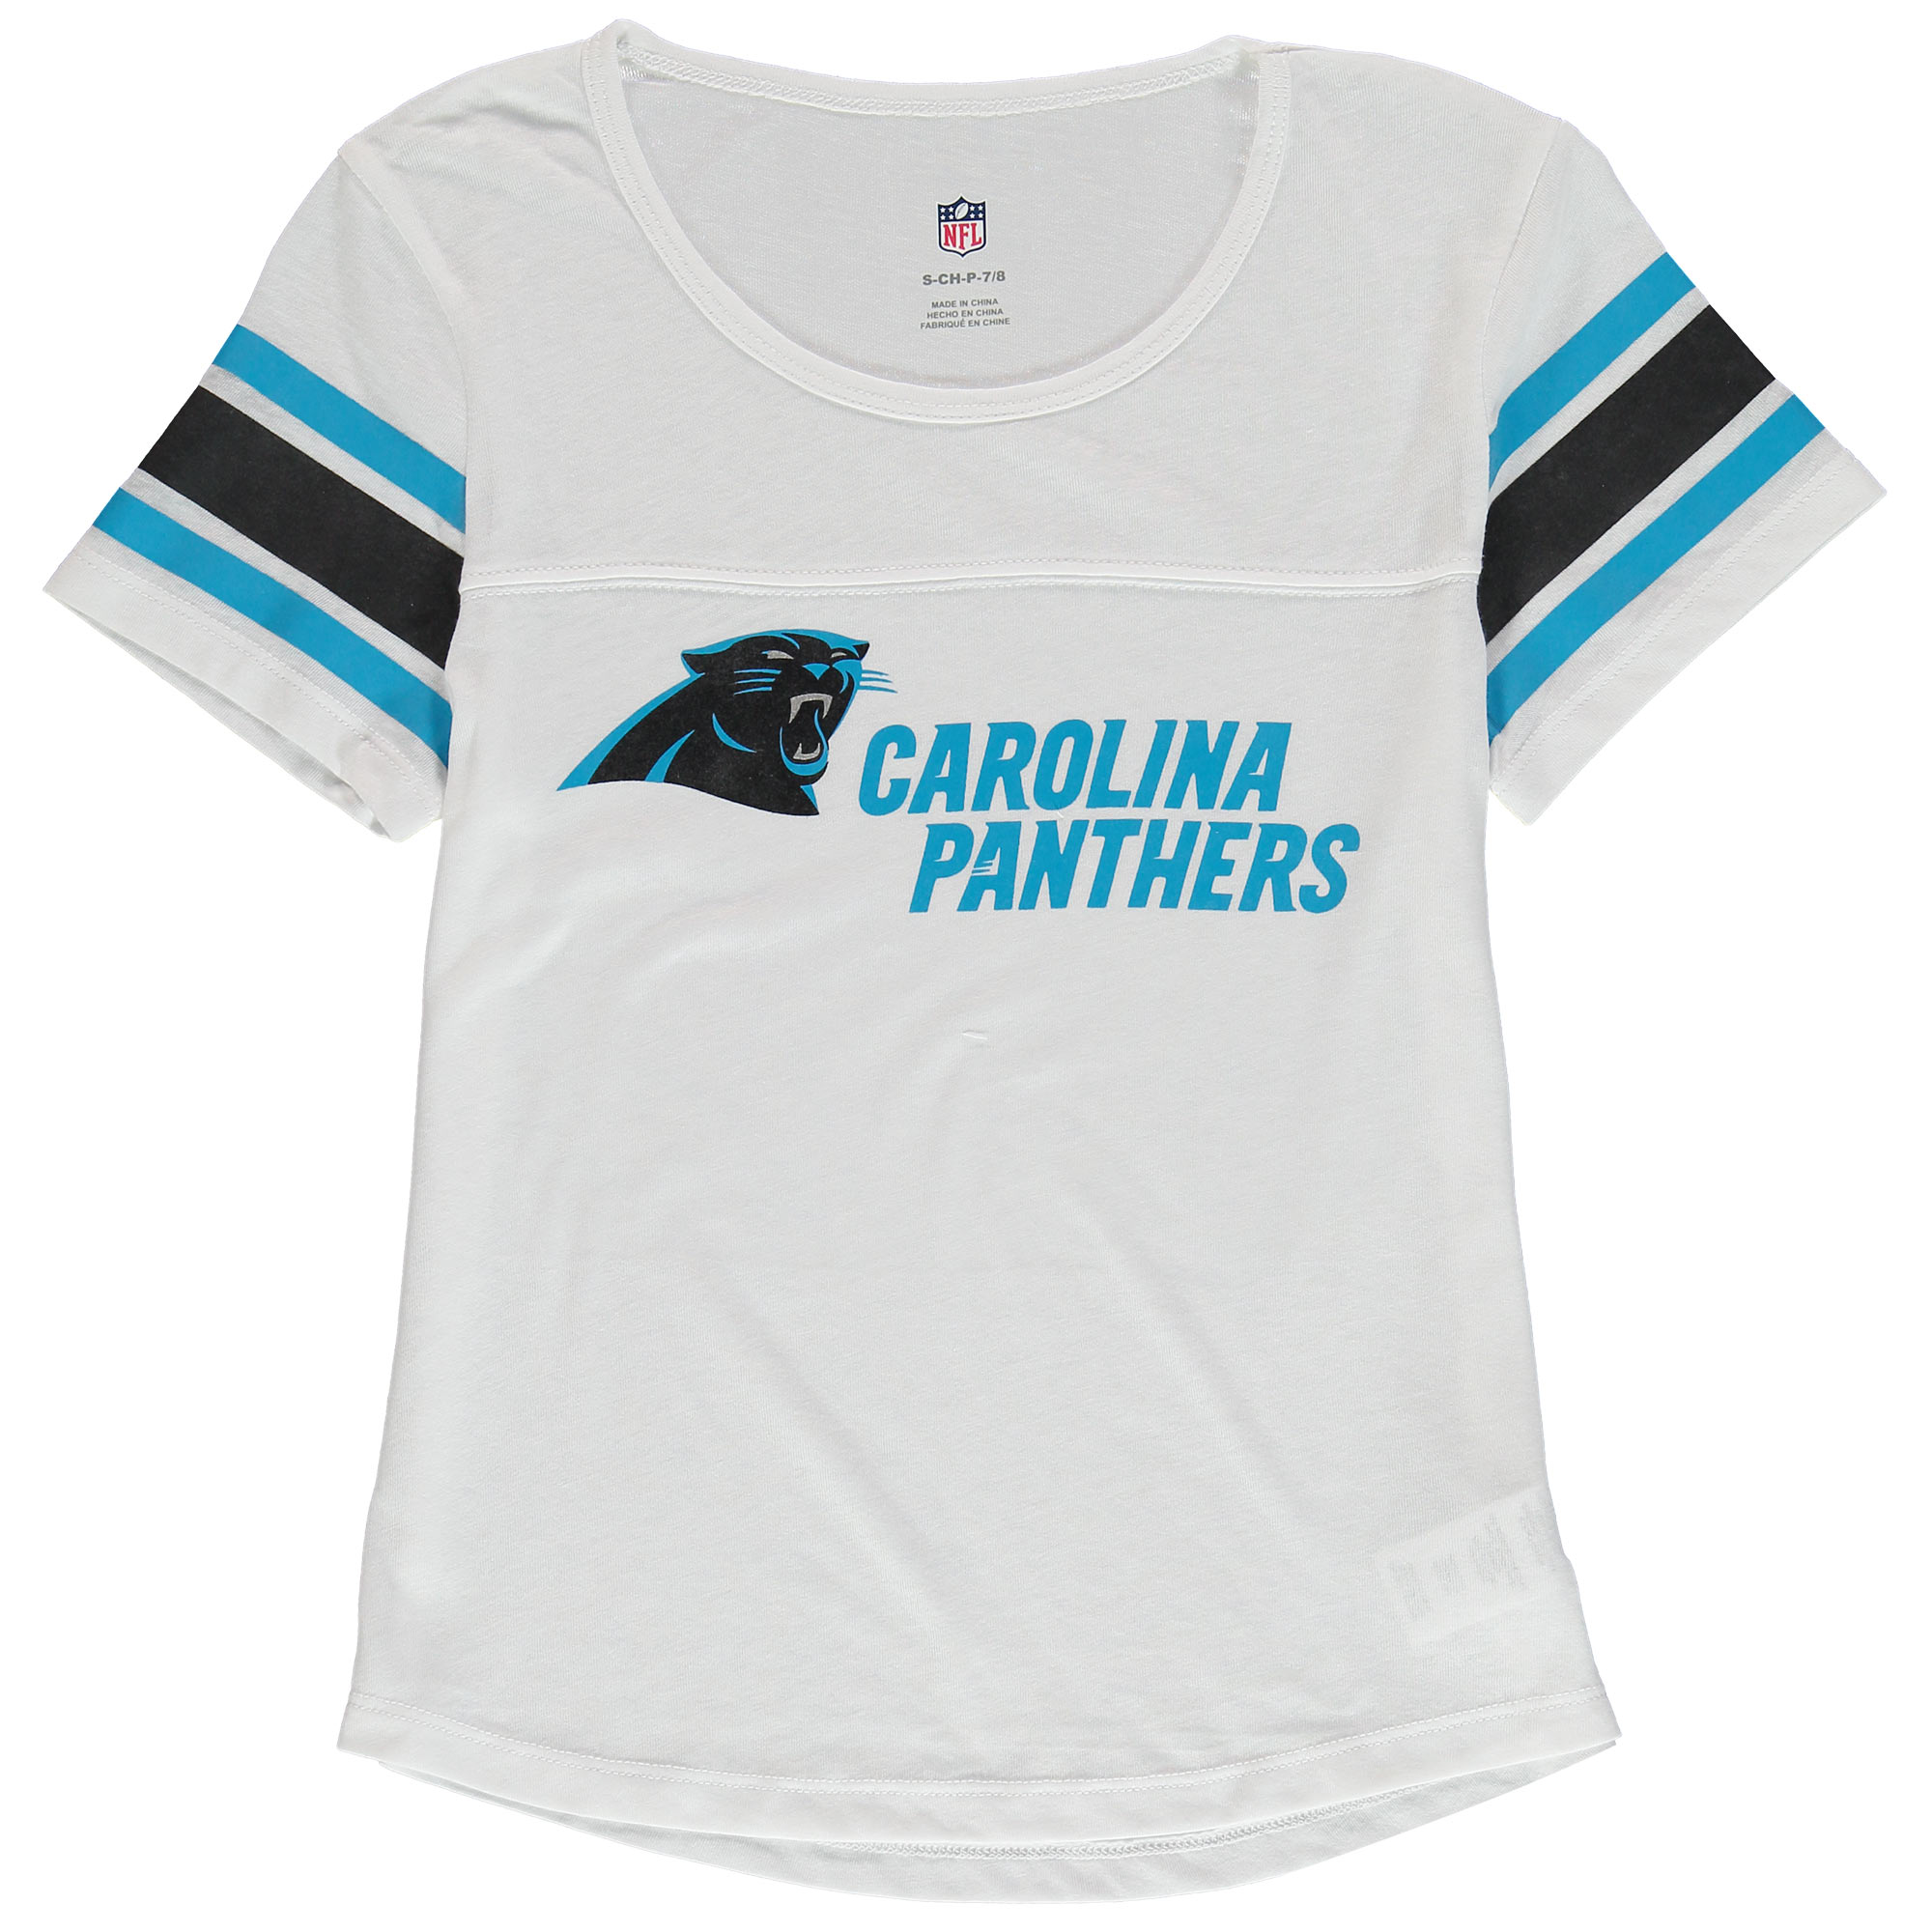 Carolina Panthers Girls Youth Team Pride Burnout Short Sleeve T-Shirt - White